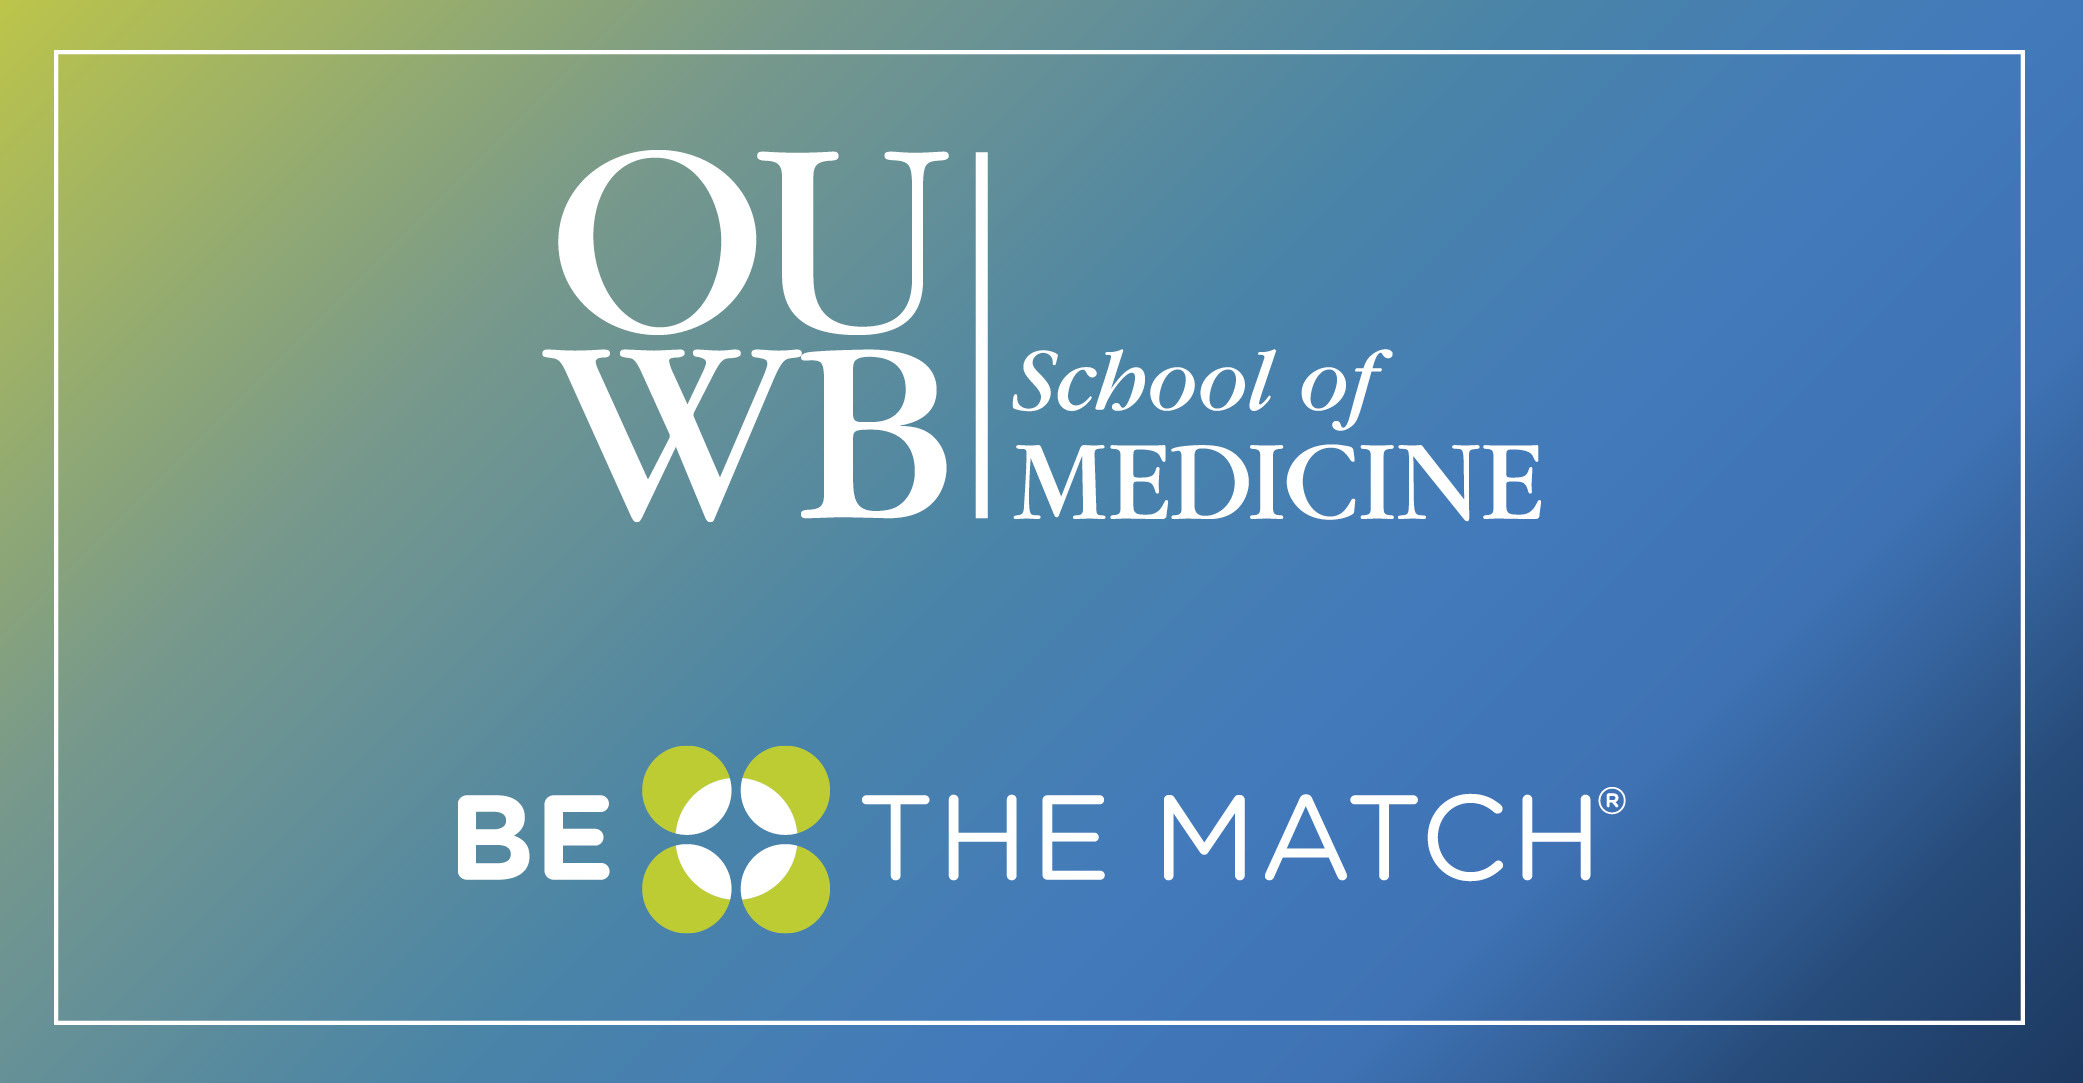 An image highlighting OUWB's 2020 Be The Match kickoff